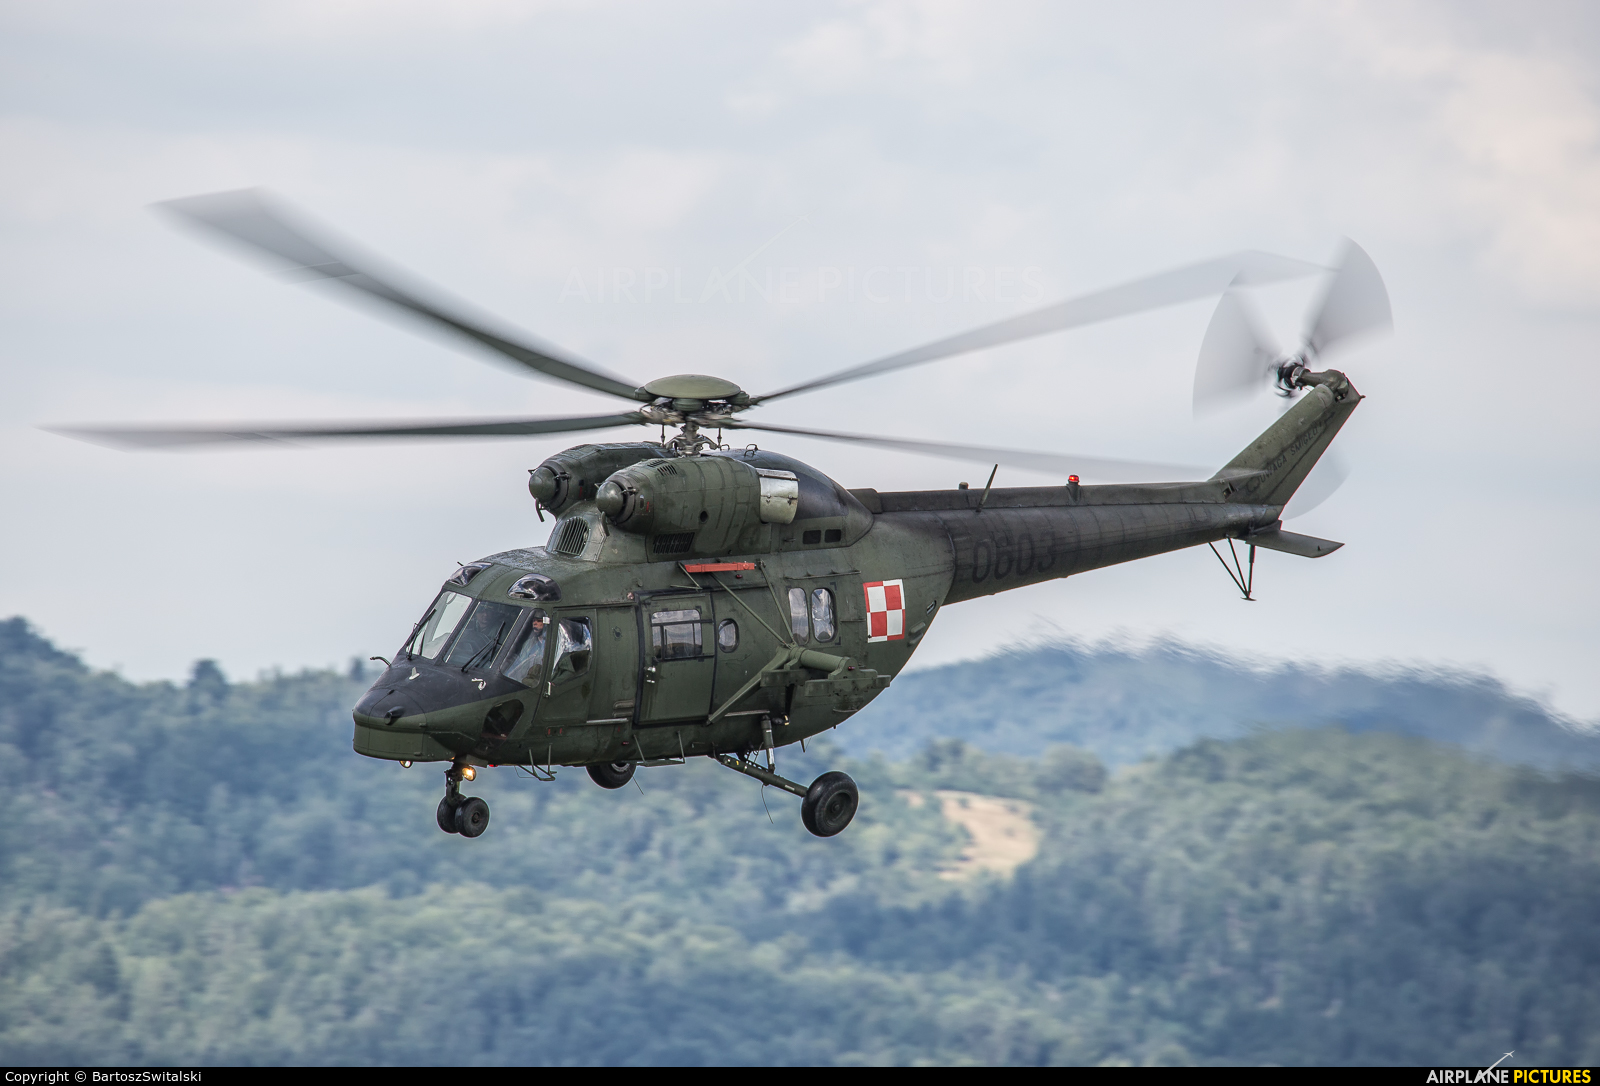 Poland - Army 0603 aircraft at Undisclosed location